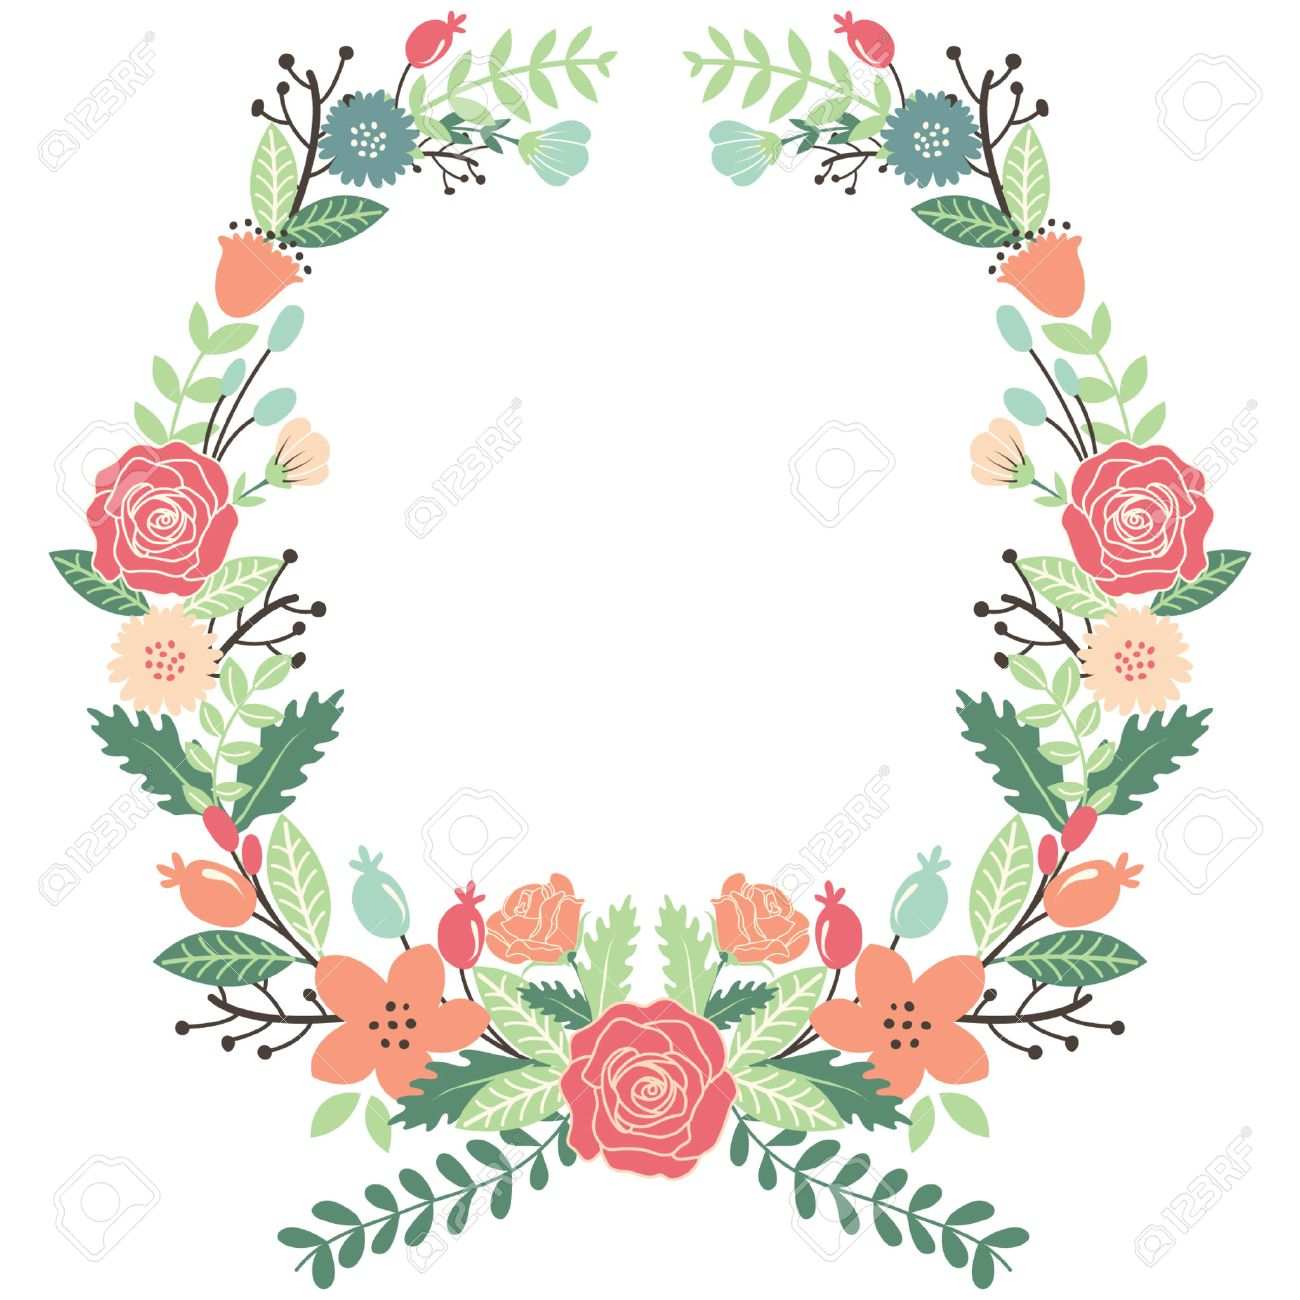 vintage flowers wreath royalty free cliparts vectors and stock rh 123rf com vintage flower clipart transparent background vintage flower clipart black and white